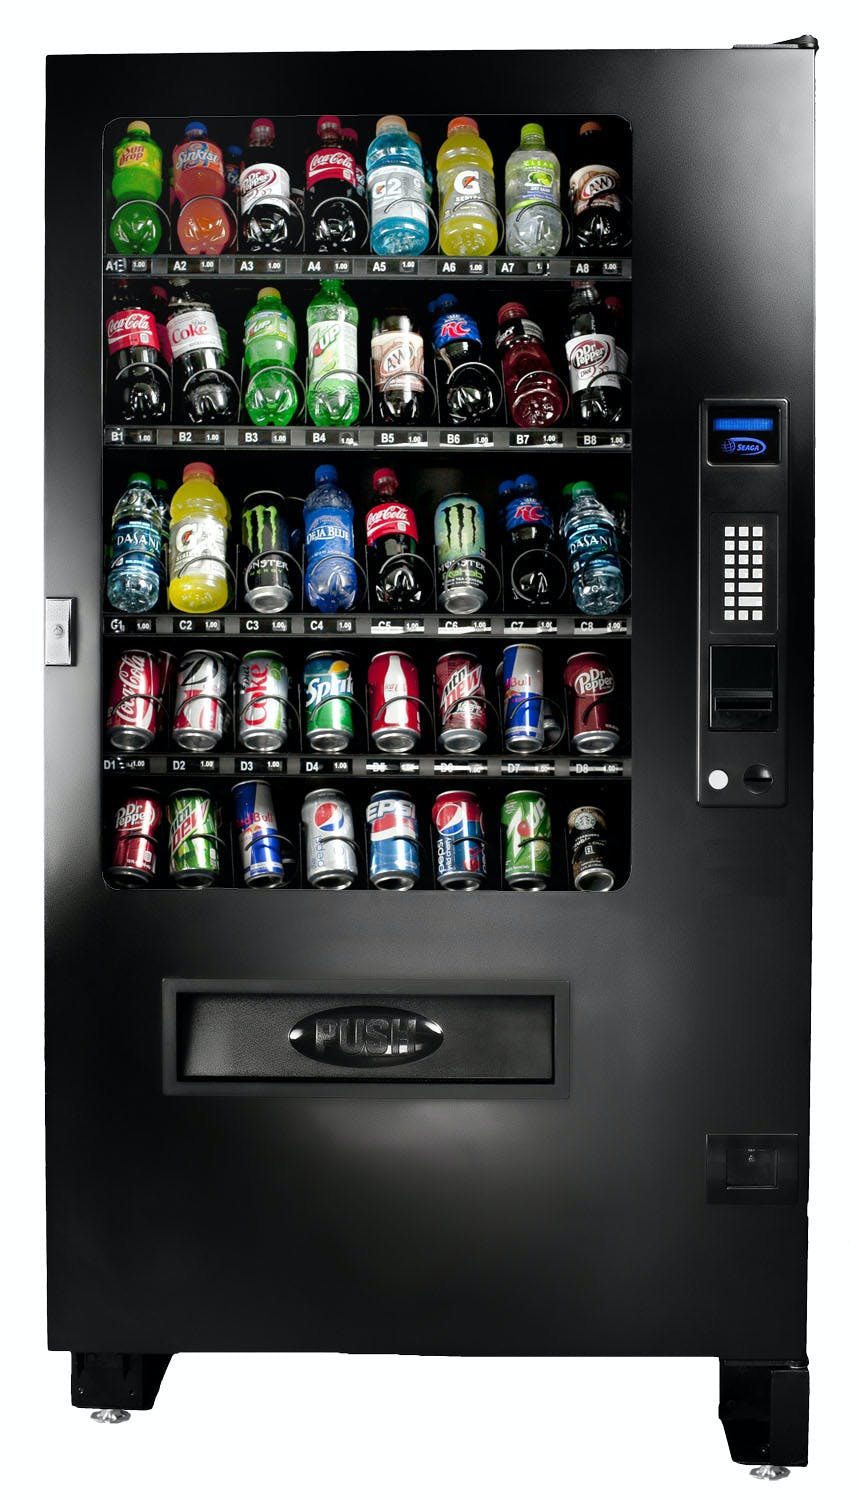 Shermco model 6 Vending machine sold by Shermco Vending